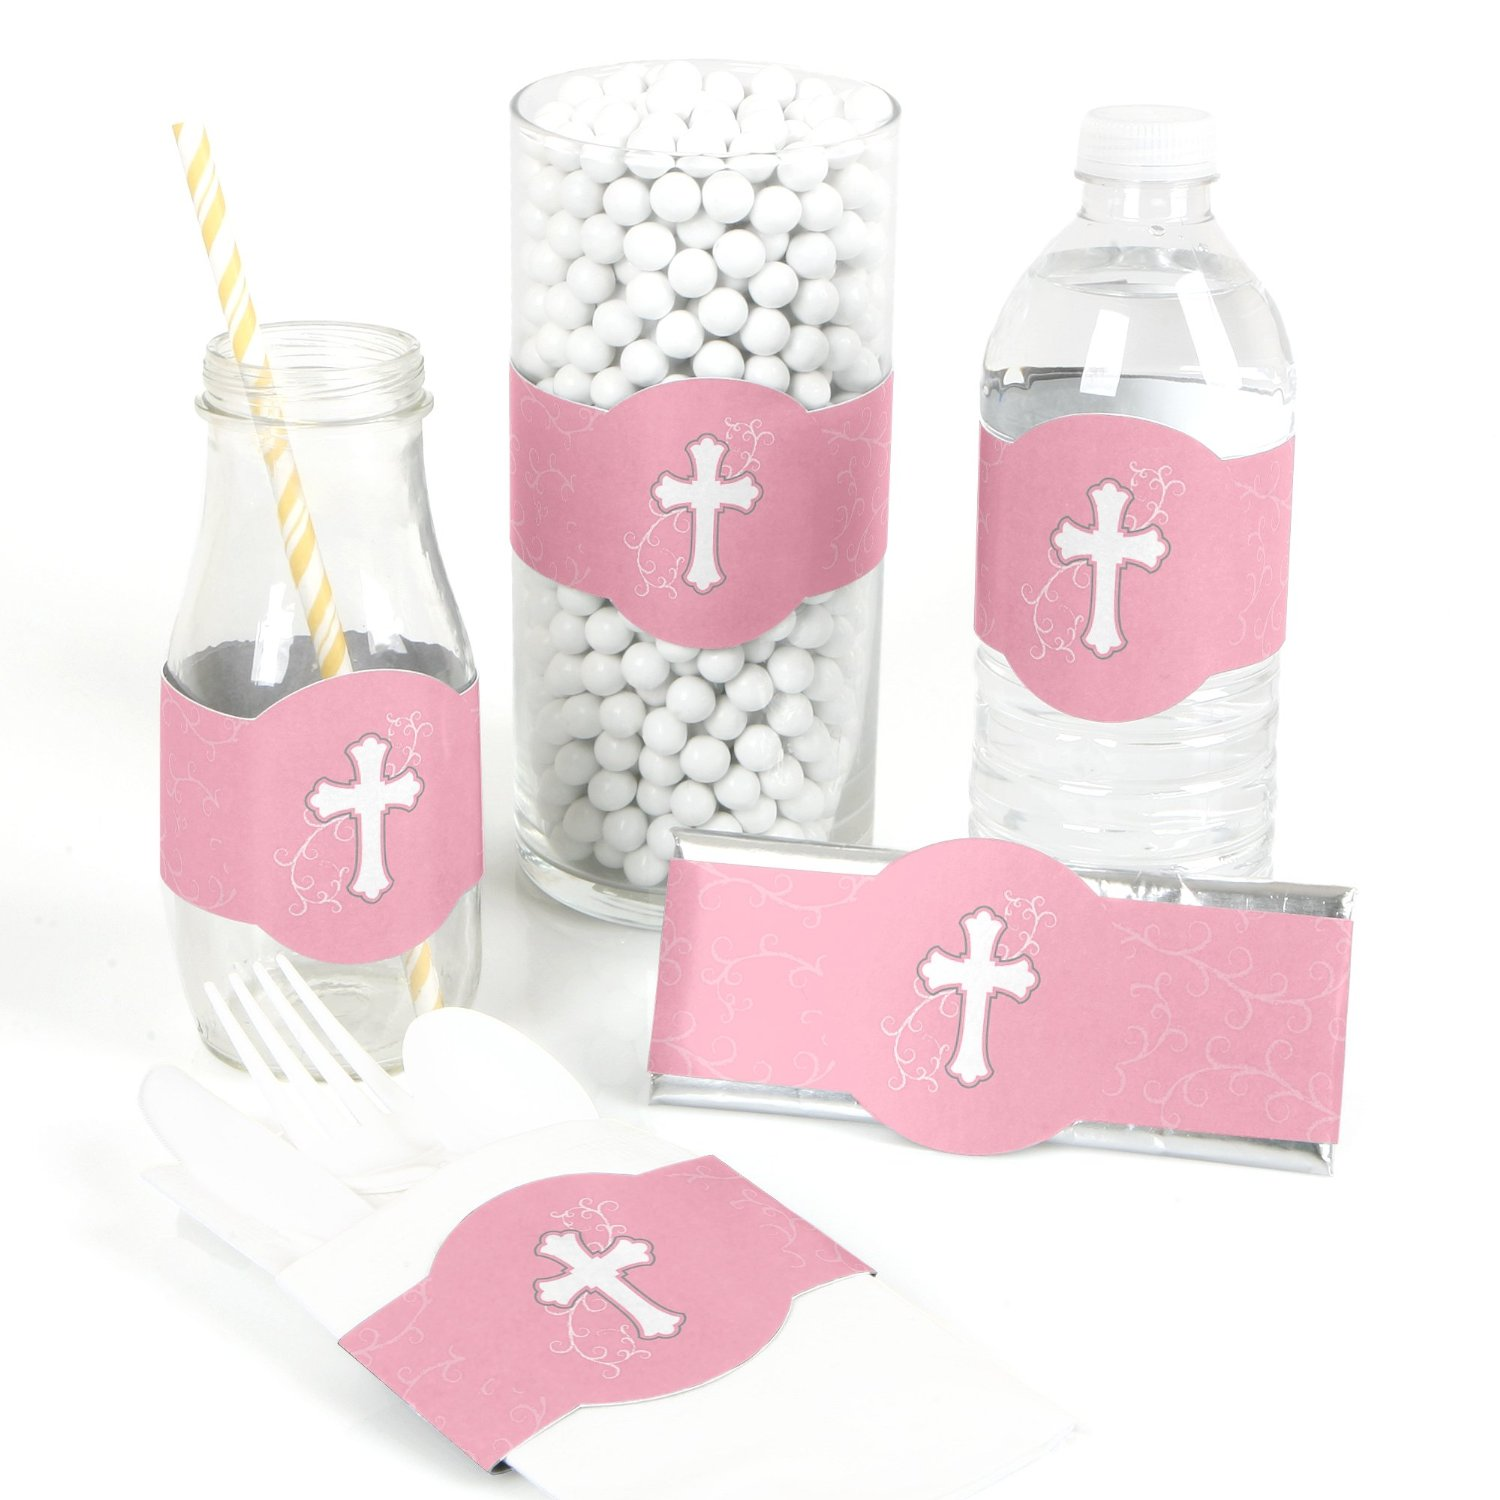 Little Miracle Girl Pink & Gray Cross - Baptism DIY Party Wrapper Favors - Set of 15